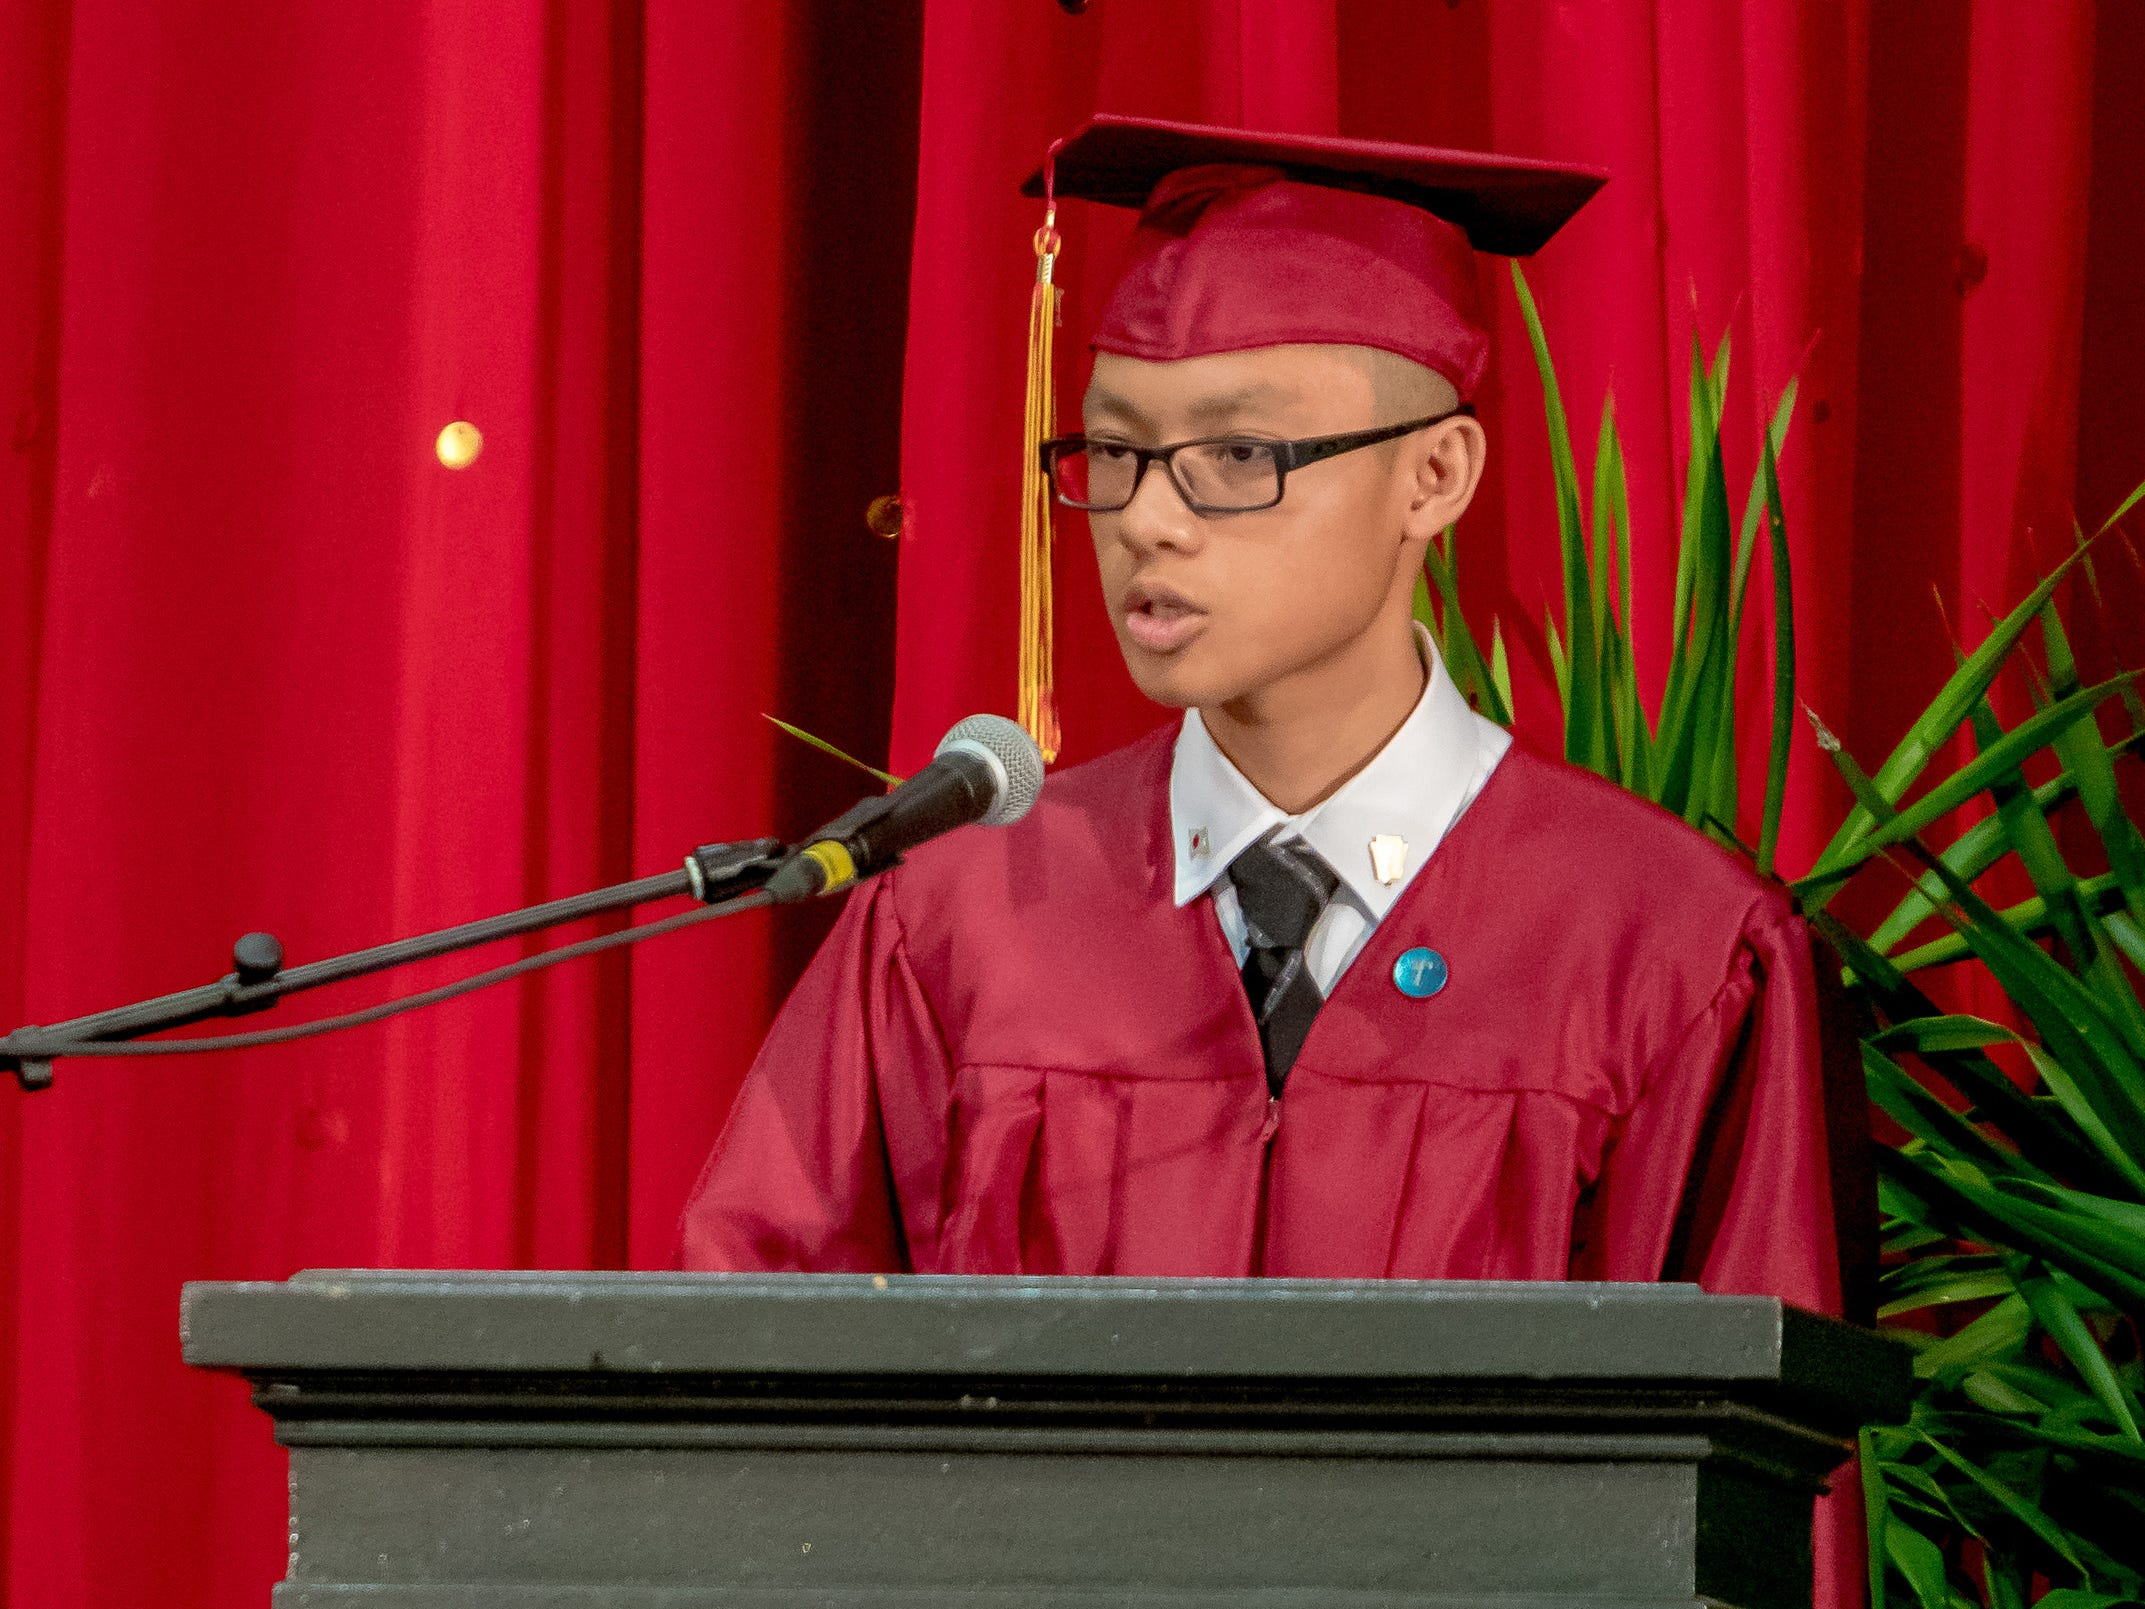 Adrian Robbie Edusada delivers his salutatory speech during the Father Duenas Memorial School Class of 2019 commencement ceremony held at the Phoenix Center on May 8, 2019.